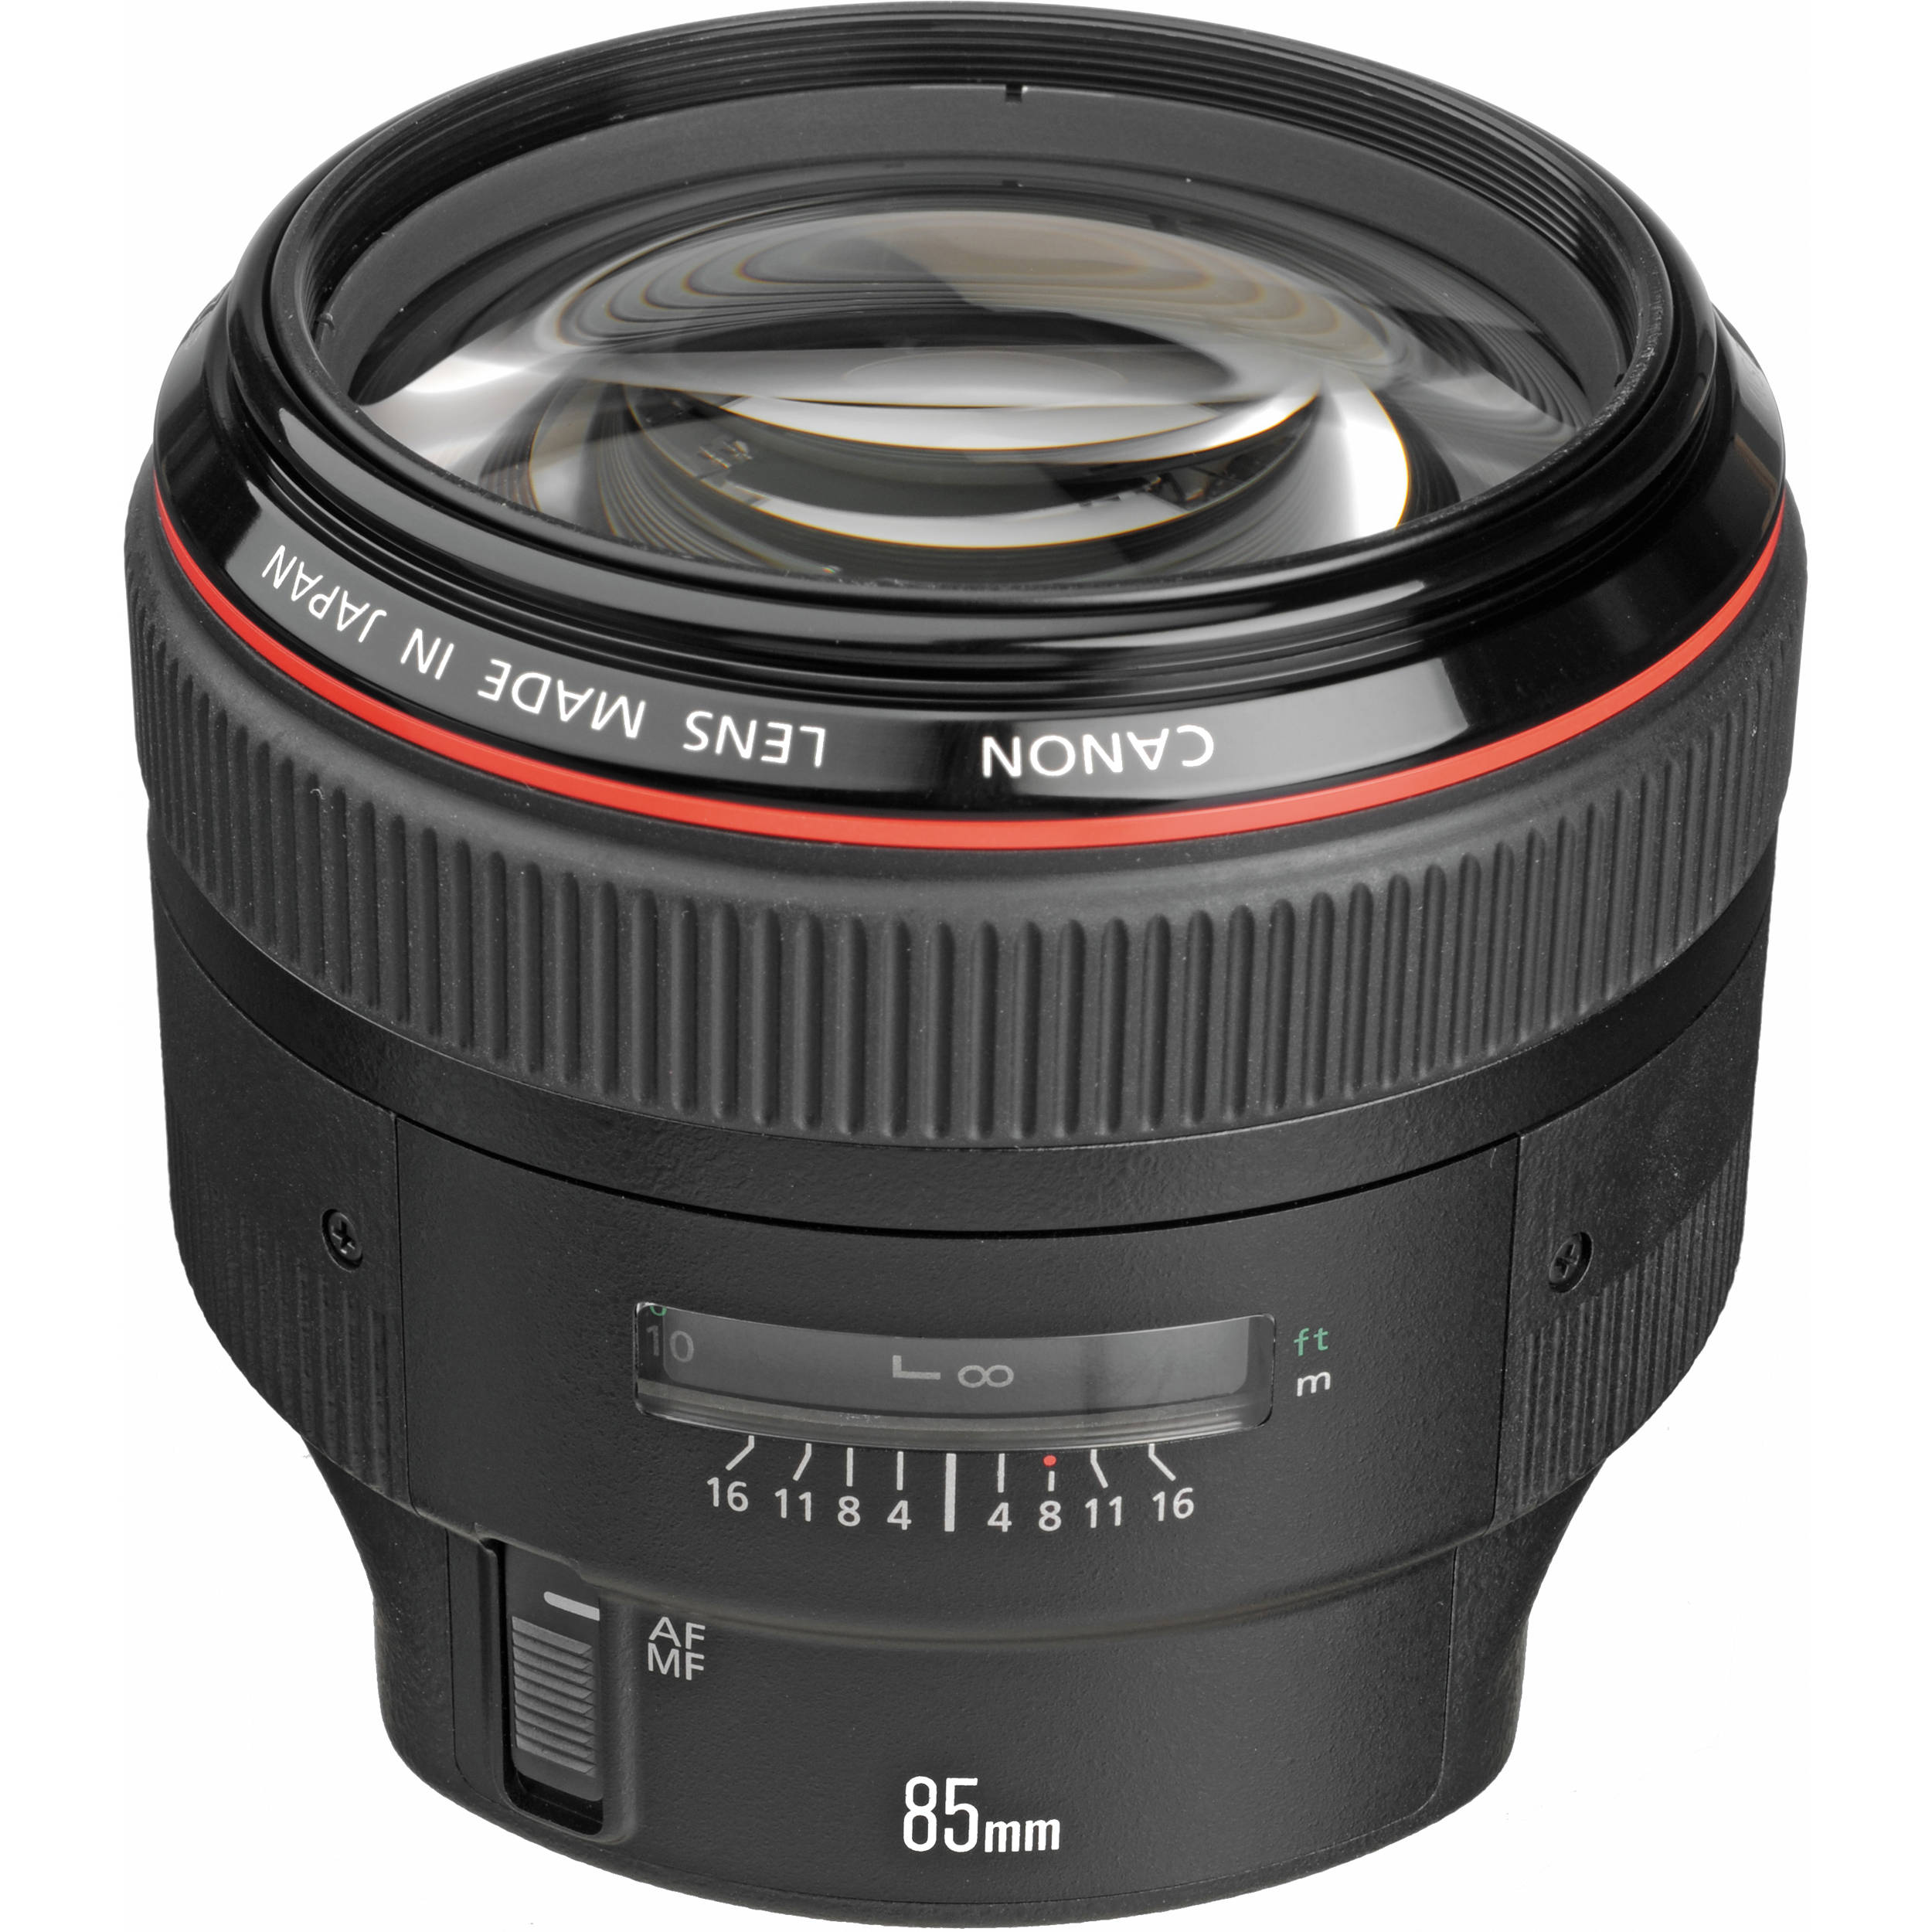 CANON EF 85mm f/1.2 L IS USM